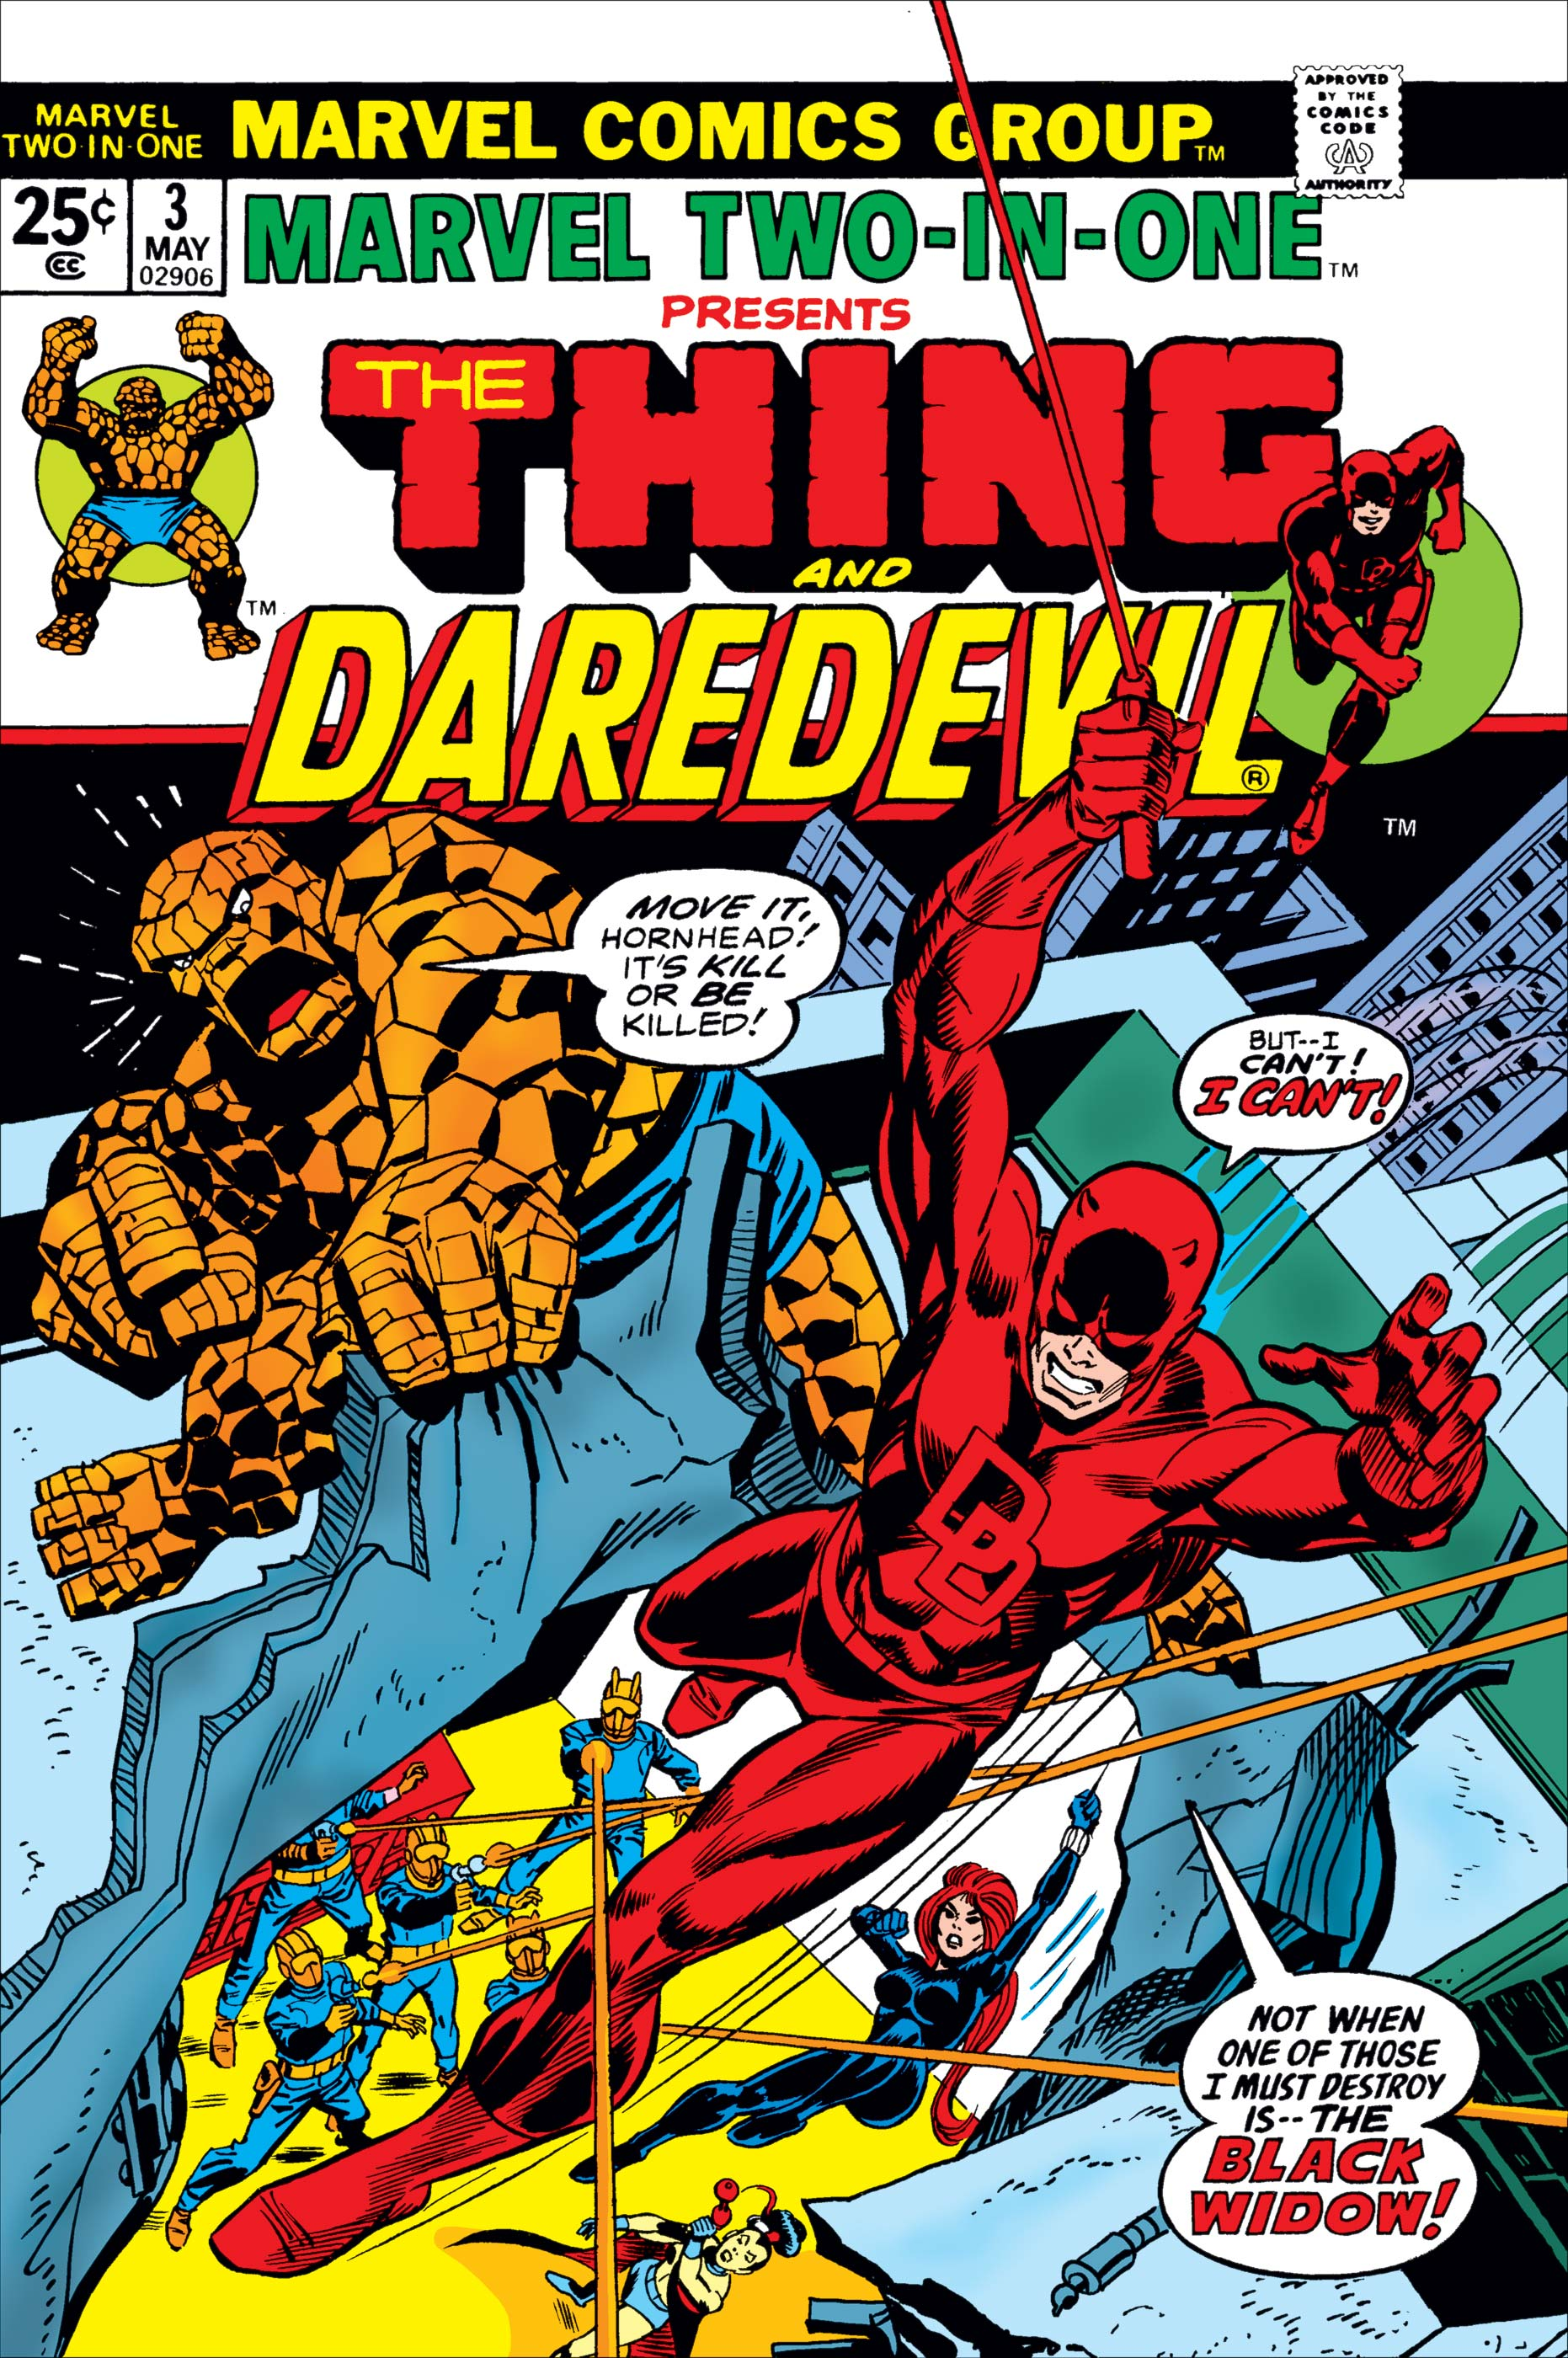 Marvel Two-in-One (1974) #3